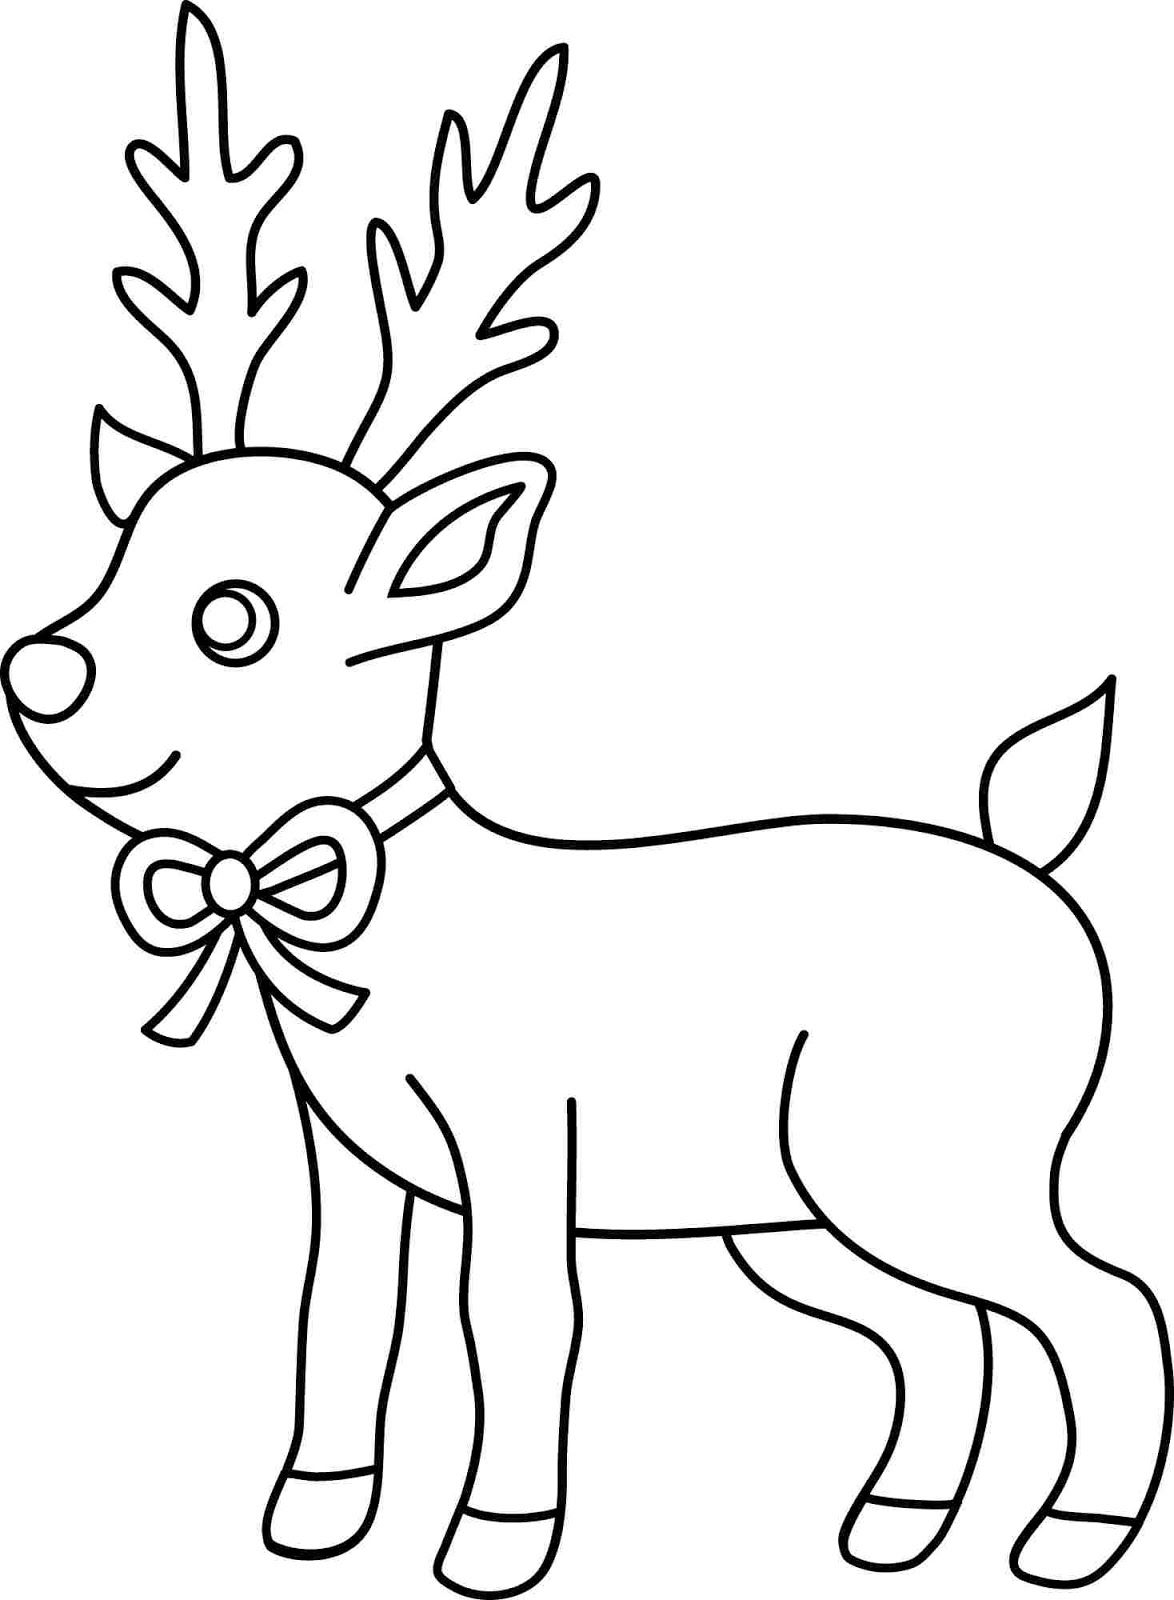 9 Free Printable Deer Coloring Pages For Kids 2016 Easy